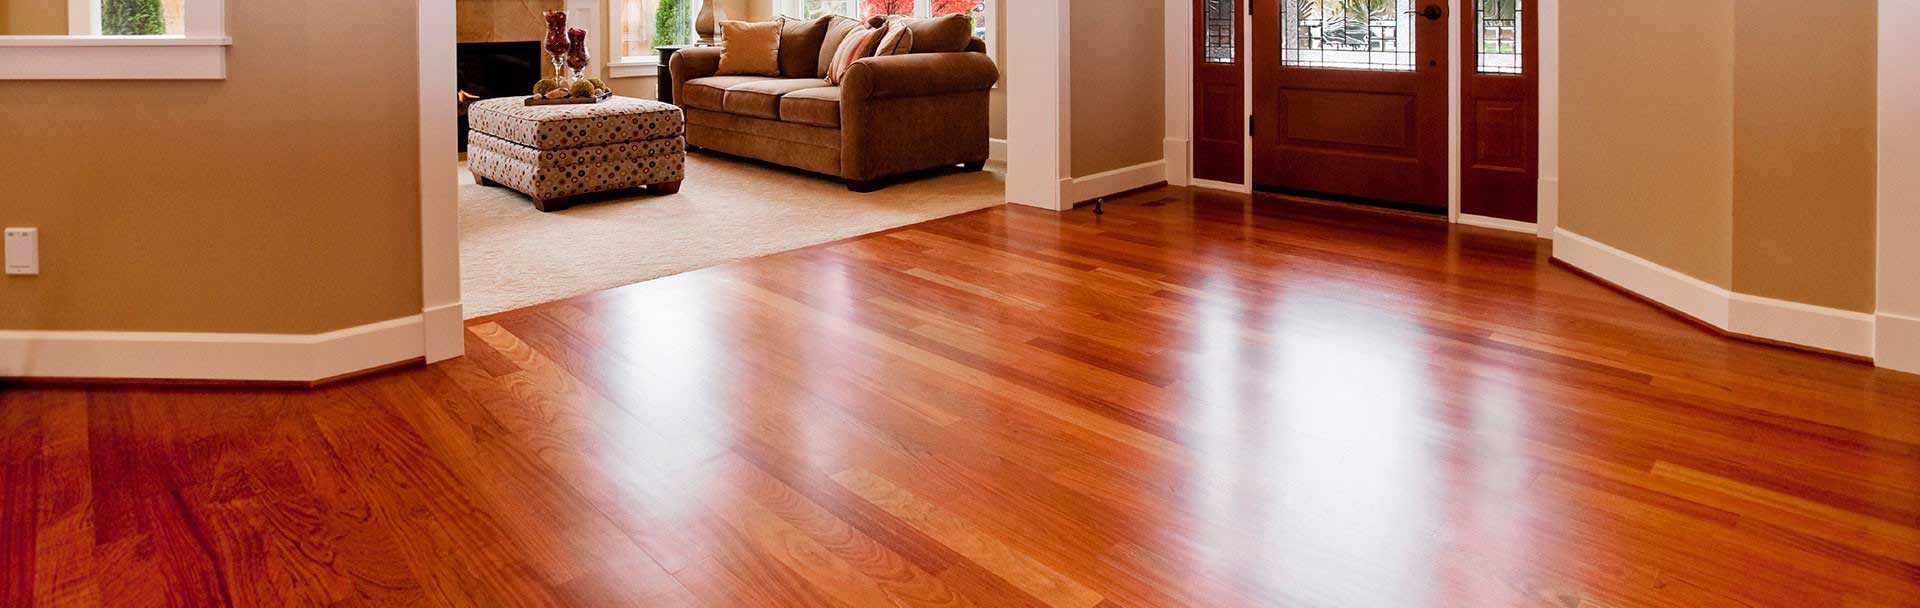 Sunnyvale Hardwood Floor Installation Refinishing Repair